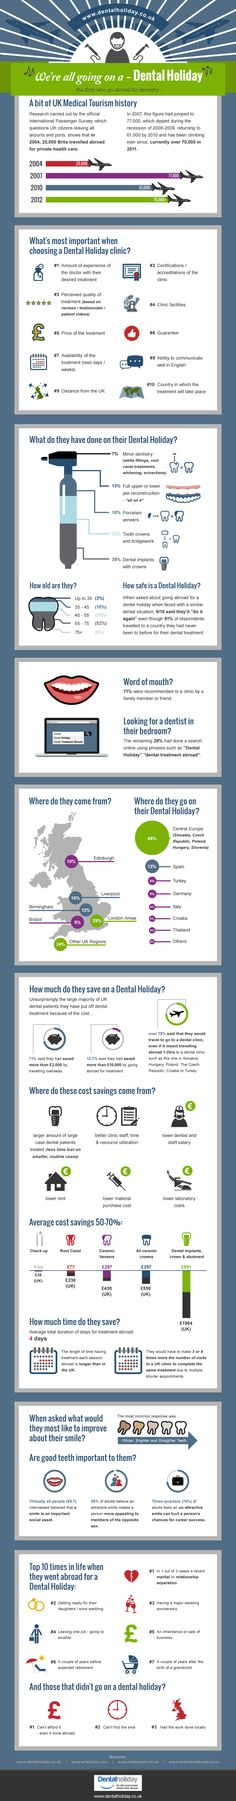 stunning & humourous UK dentistry abroad infographic...